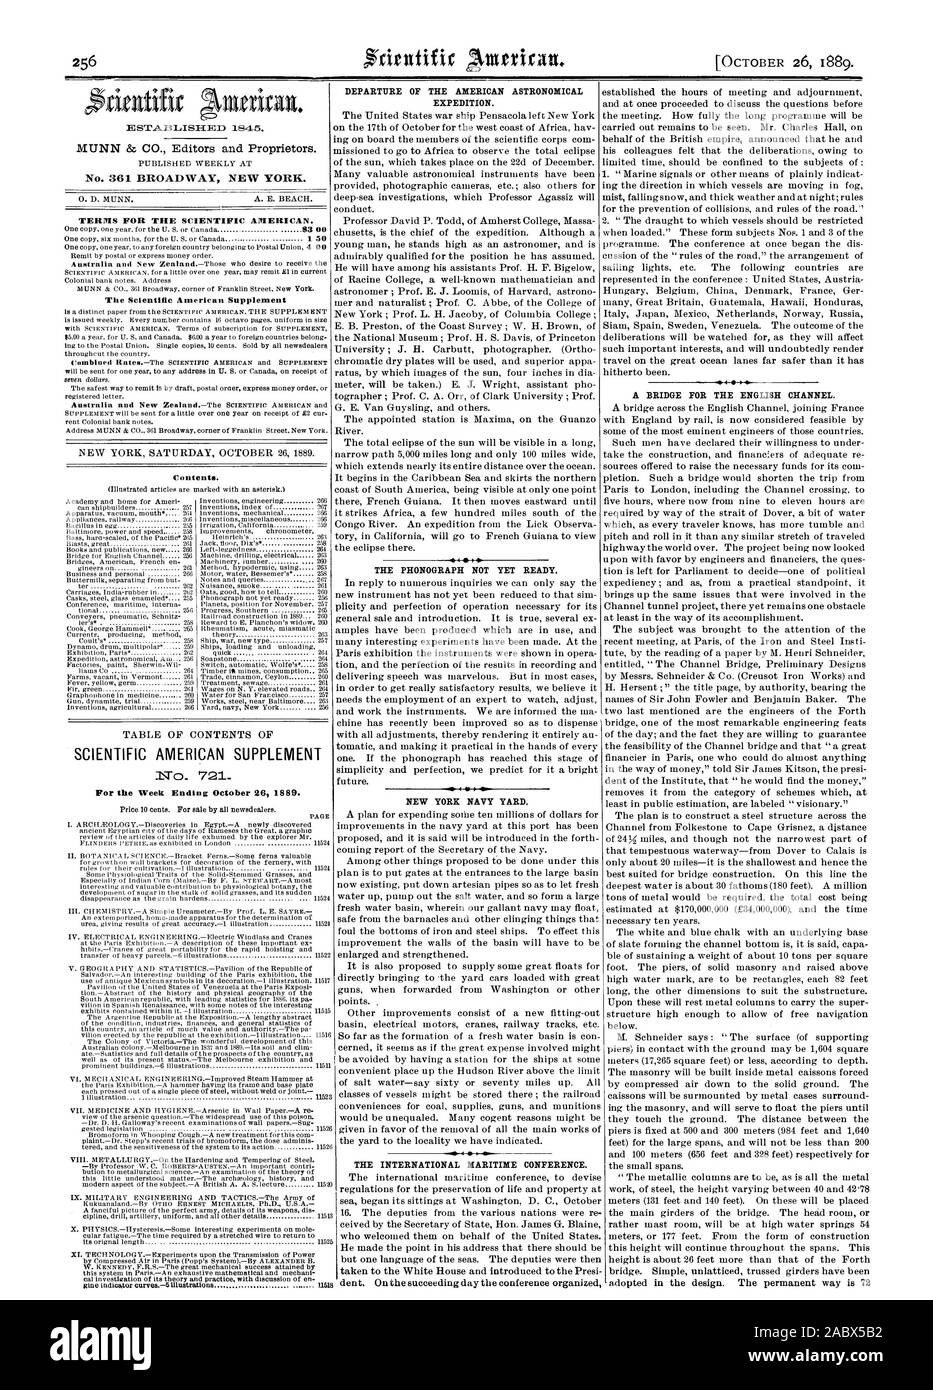 O. D. MUNN. A. E. BEACH. TERMS FOR THE SCIENTIFIC AMERICAN. 93 00 The Scientific American Supplement Contents. SCIENTIFIC AMERICAN SUPPLEMENT No  721 Price 10 cents. For sale by all newsdealers. THE PHONOGRAPH NOT YET READY. NEW YORK NAVY YARD. THE INTERNATIONAL MARITIME CONFERENCE. A BRIDGE FOR THE ENGLISH CHANNEL. 1845. DEPARTURE OF THE AMERICAN ASTRONOMICAL EXPEDITION., 1889-10-26 Stock Photo